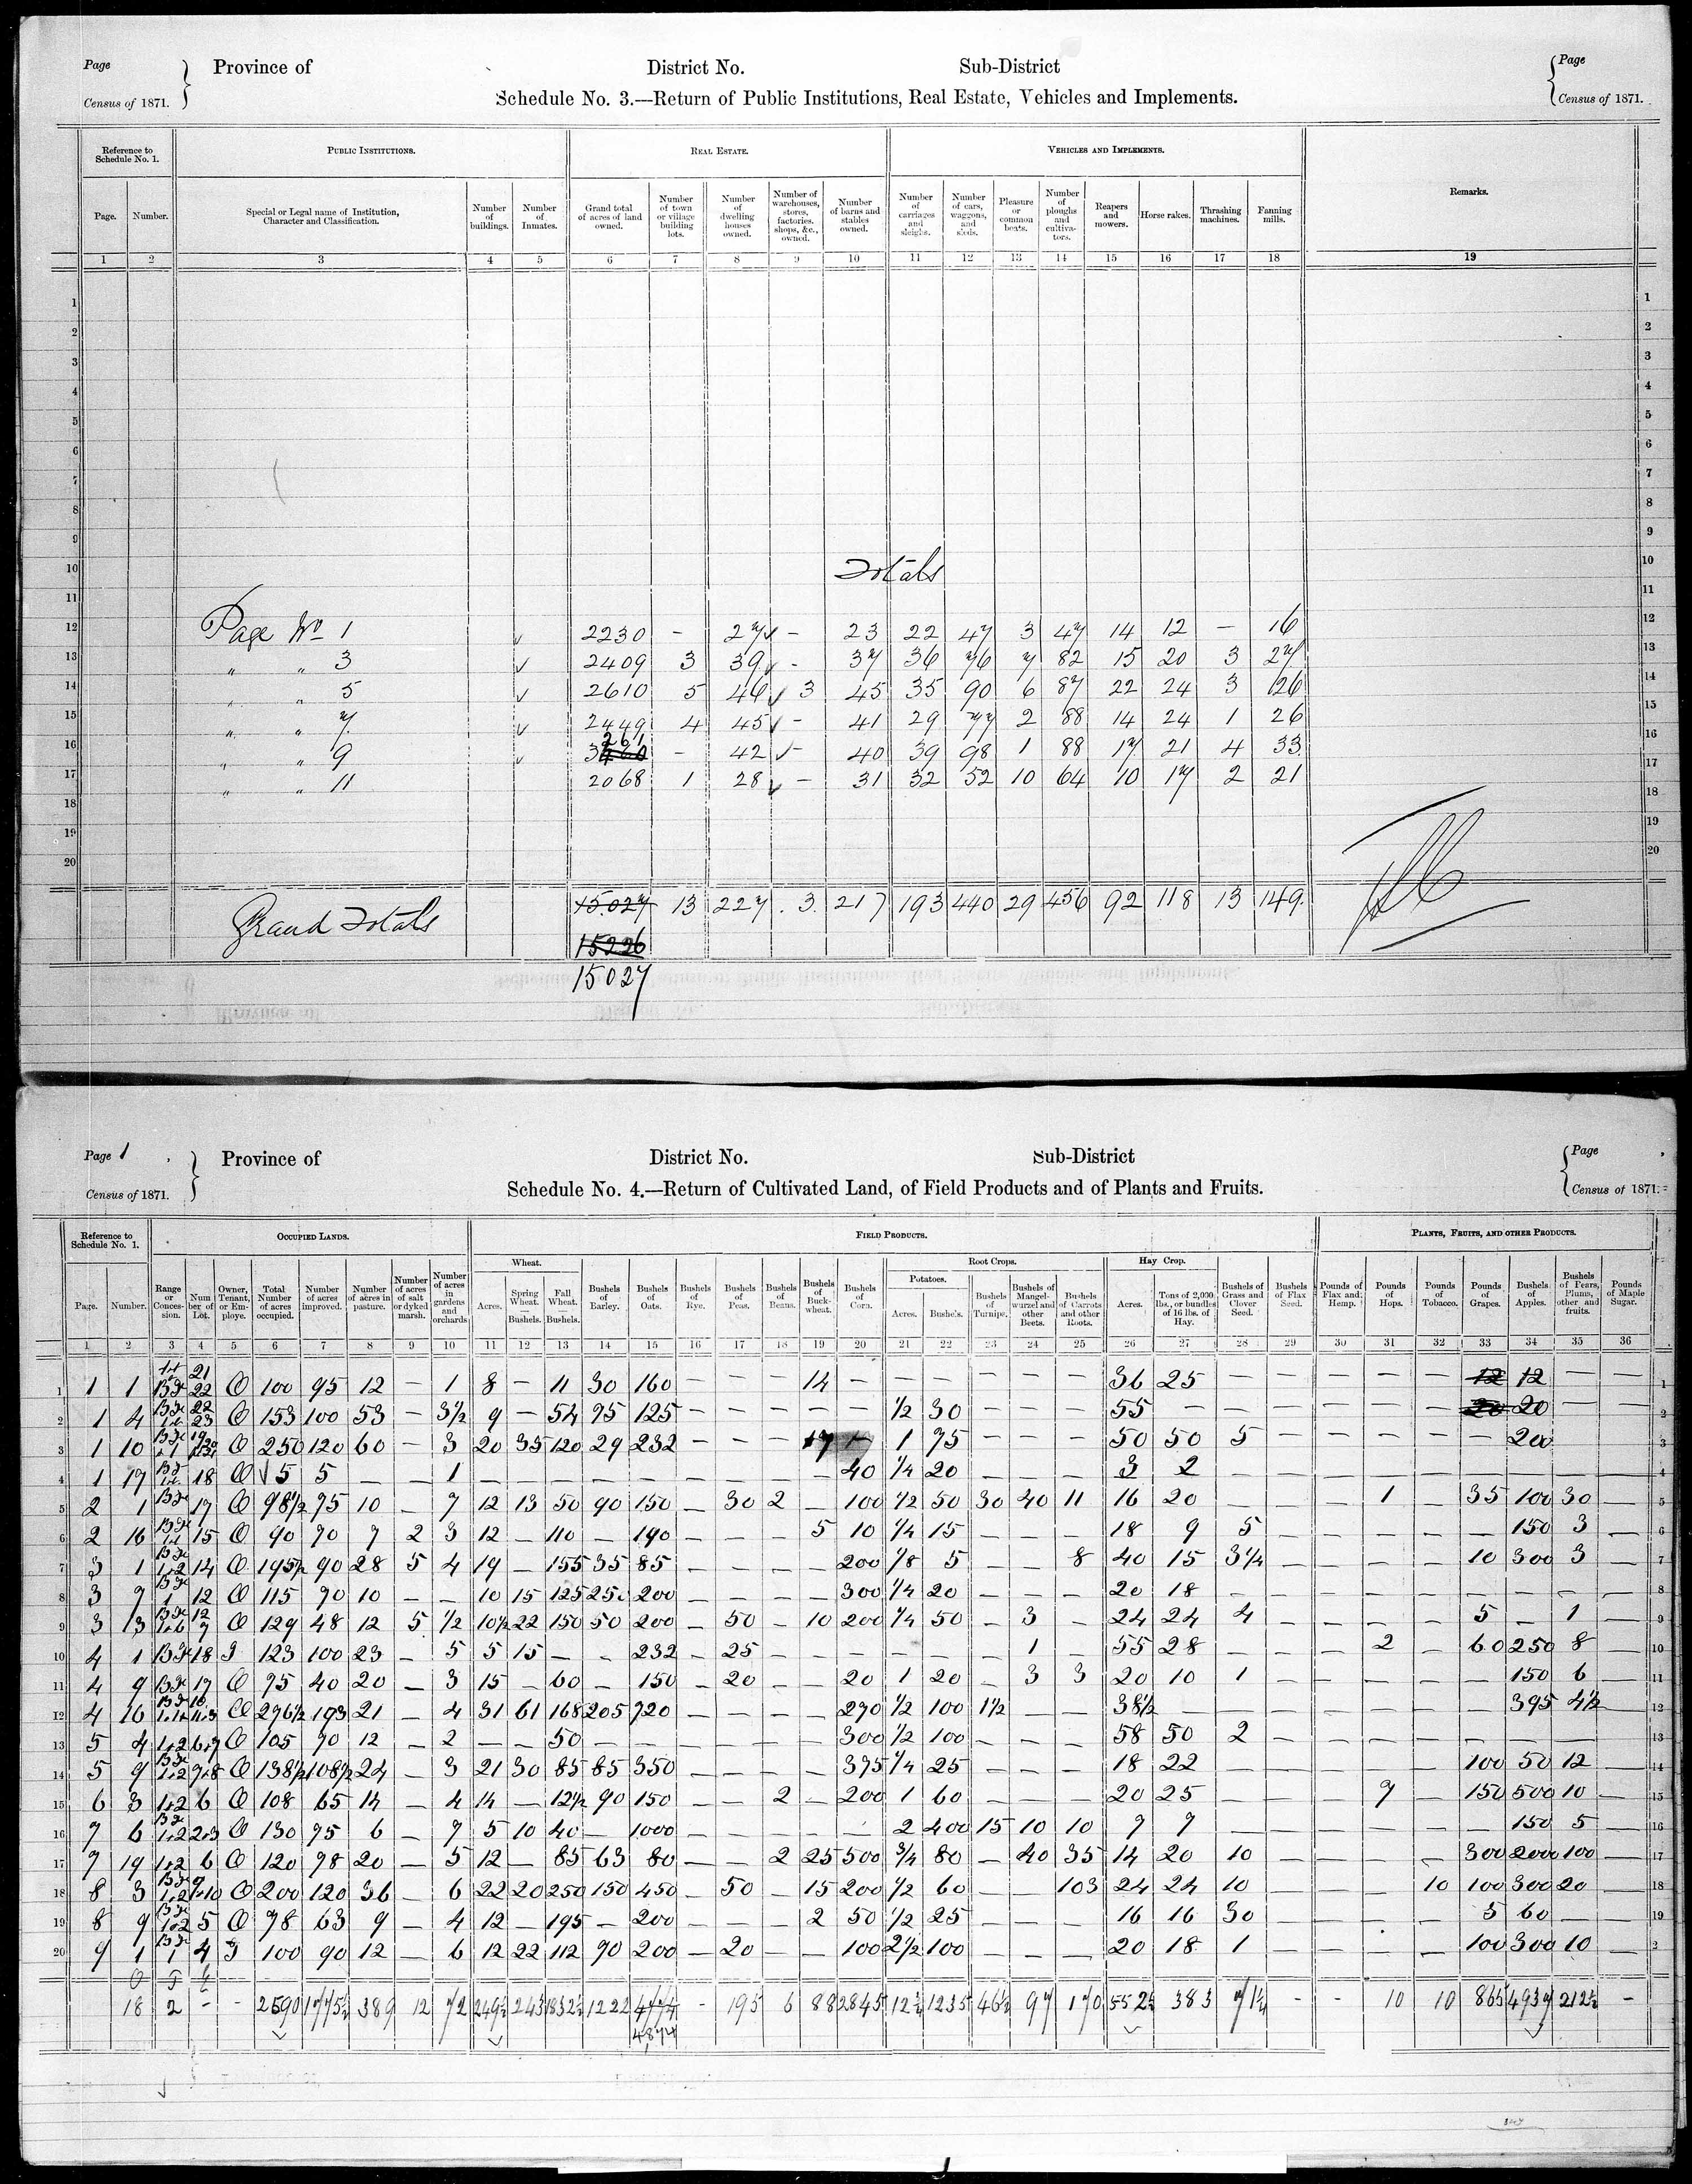 Title: Census of Canada, 1871 - Mikan Number: 142105 - Microform: c-9920